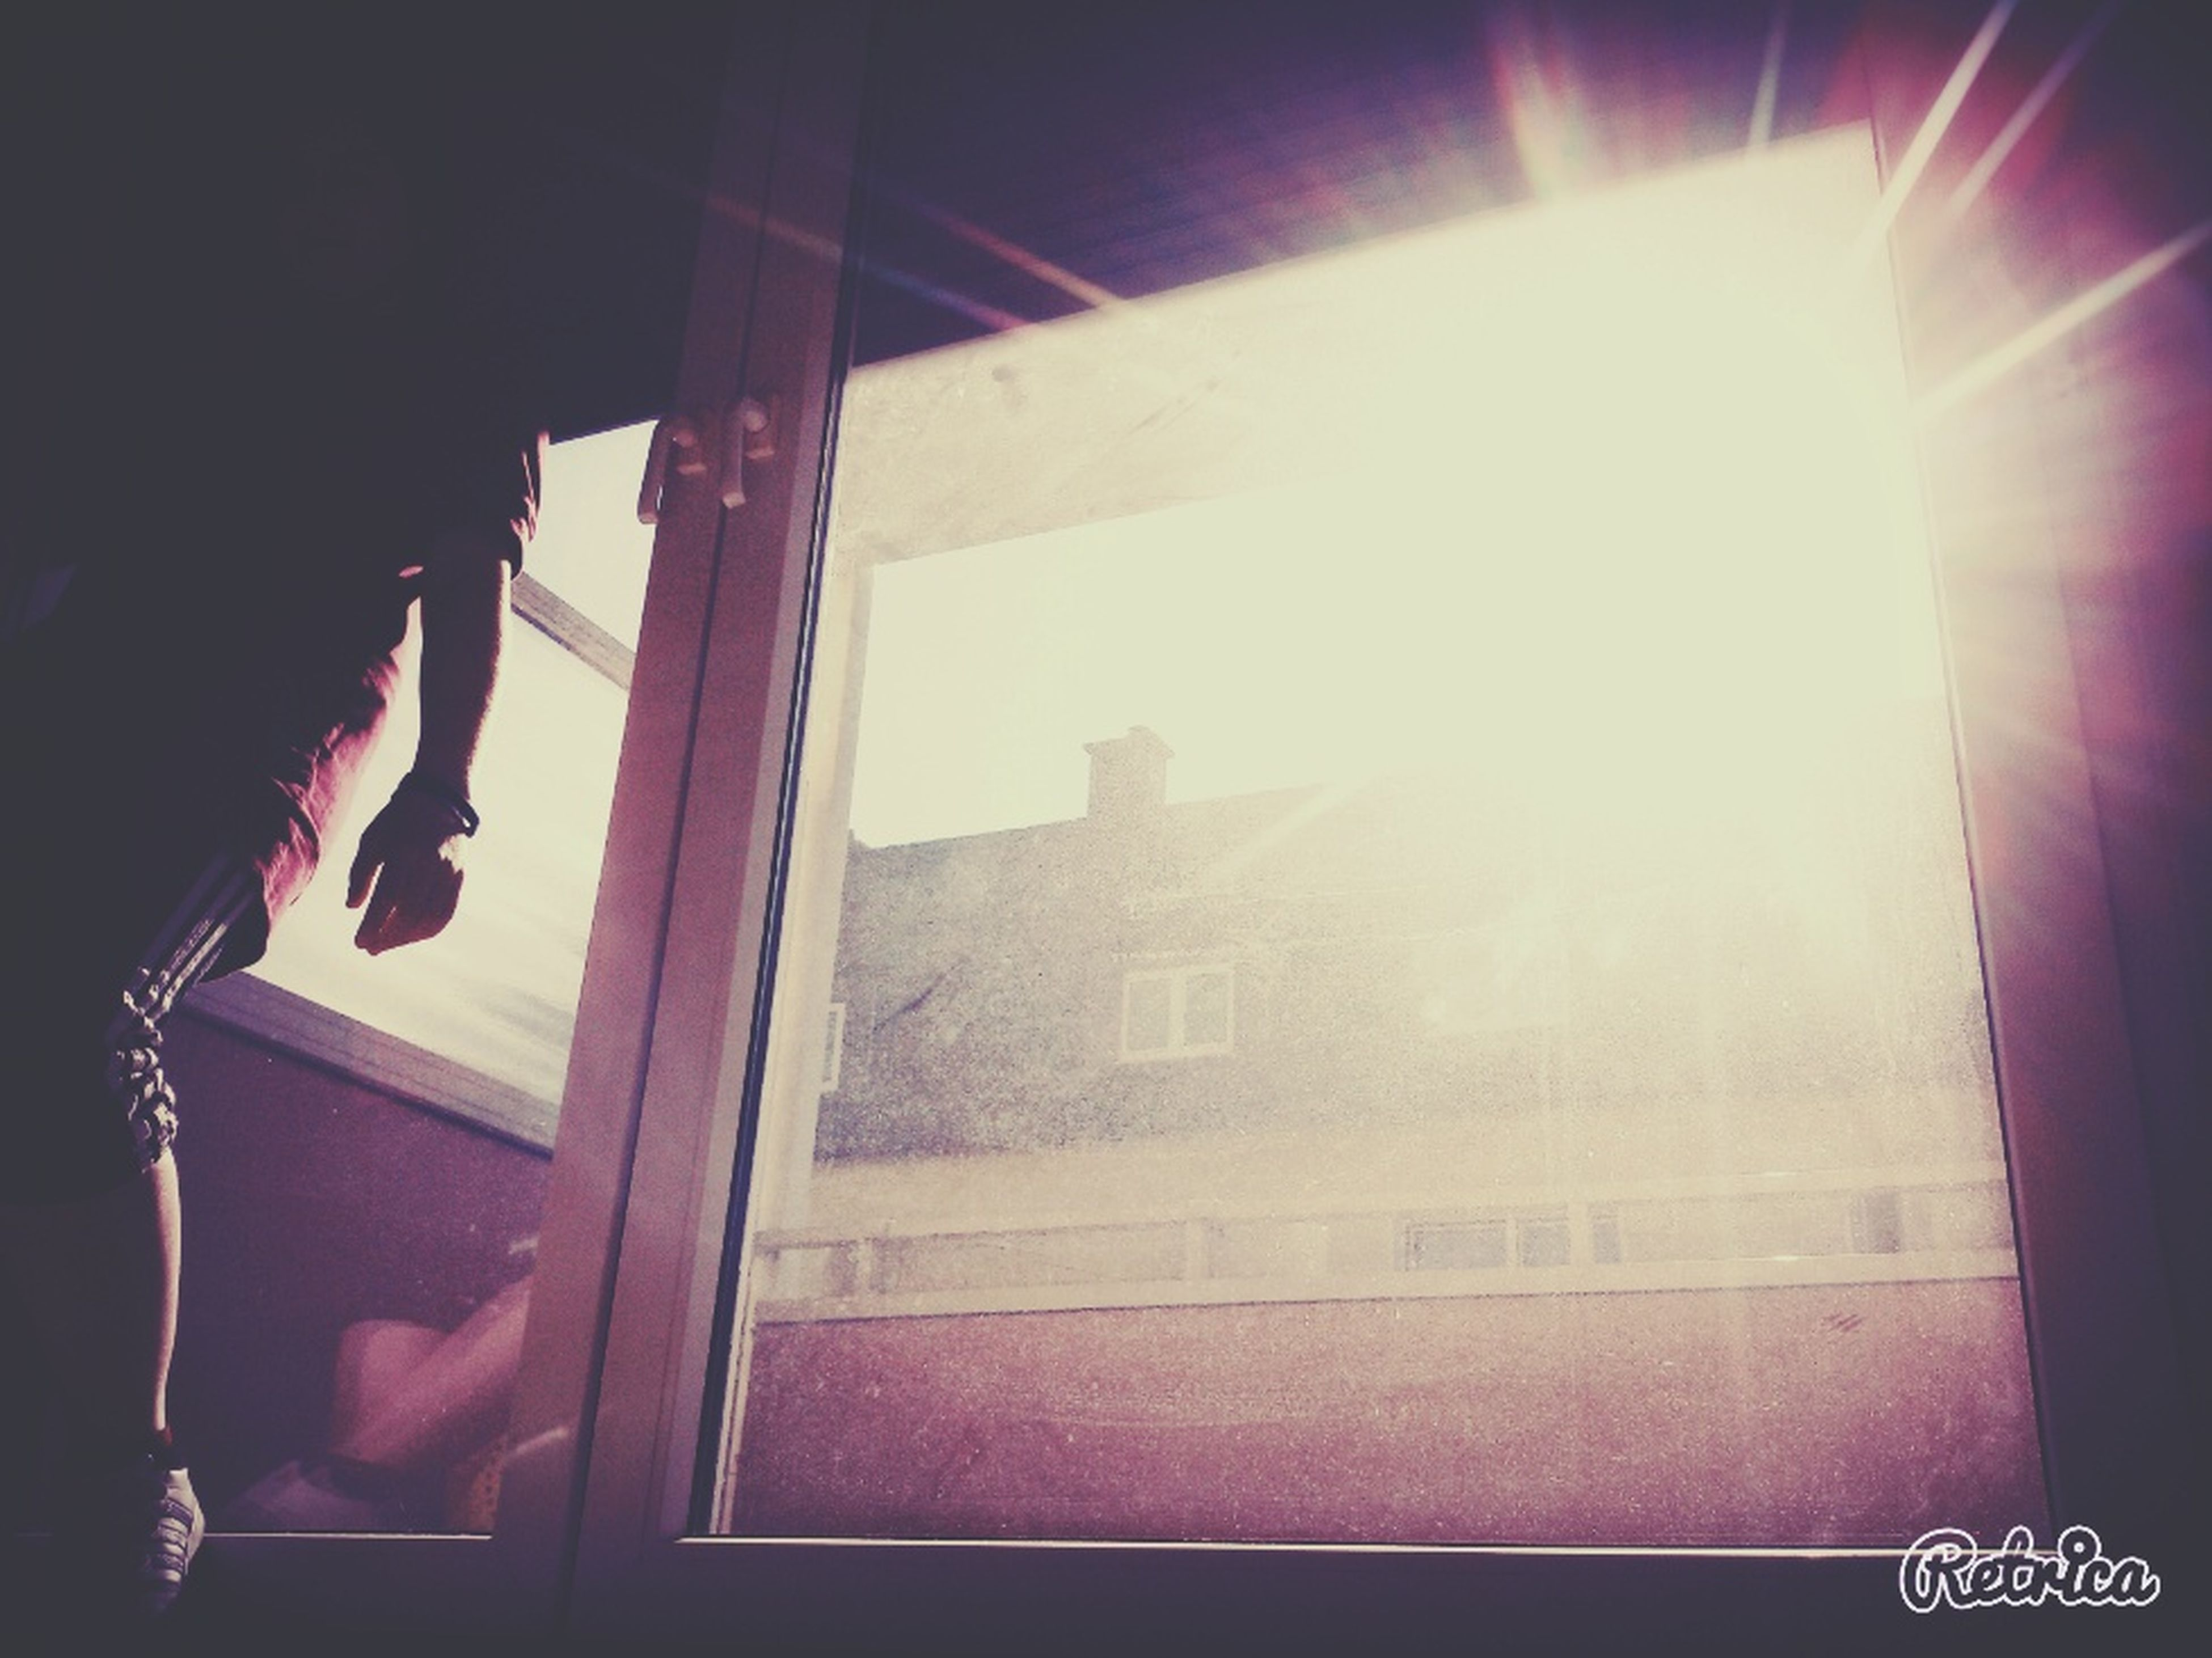 architecture, built structure, window, building exterior, indoors, sunbeam, sunlight, sun, lens flare, glass - material, building, low angle view, curtain, house, home interior, no people, day, wall - building feature, city, transparent